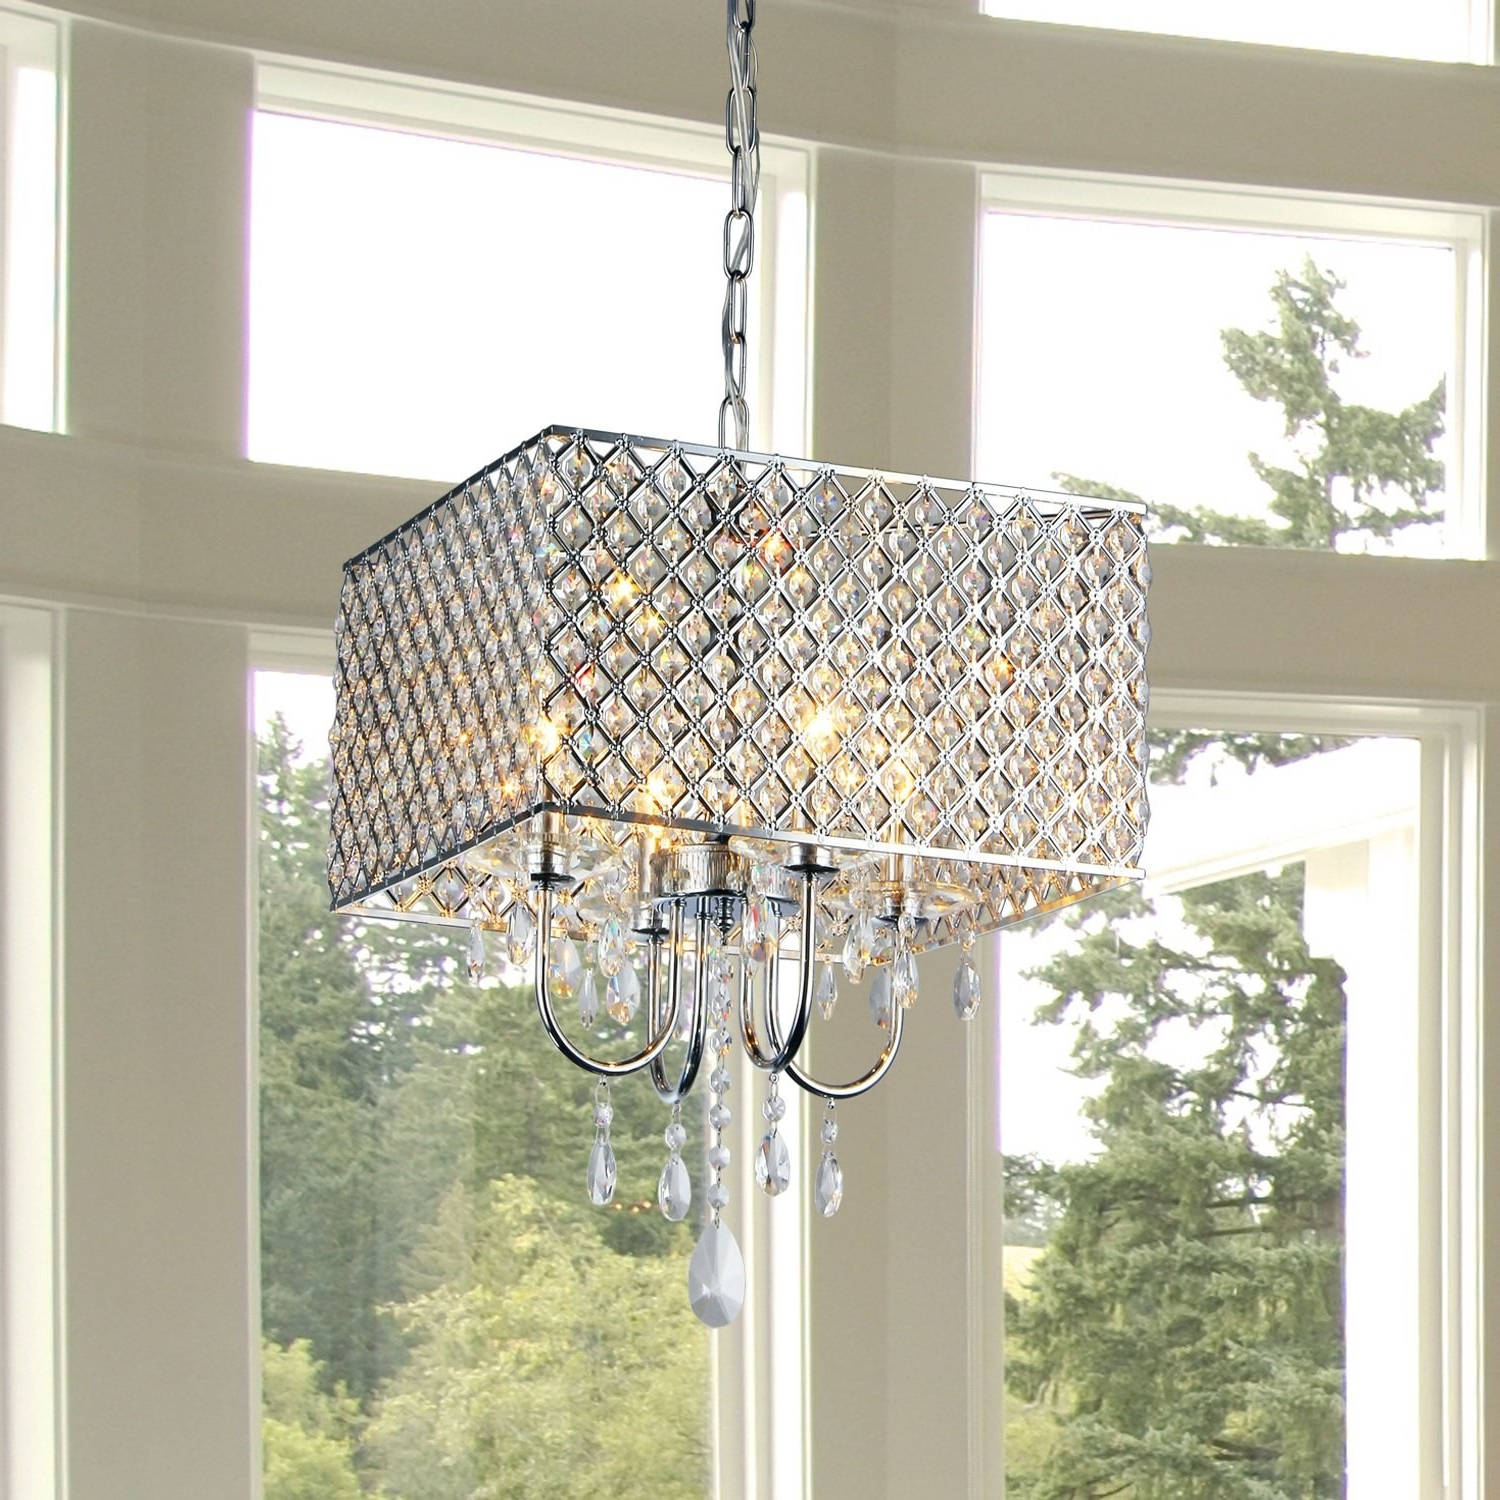 2020 Garrin Square 4 Light Crystal Chandelier With Regard To Albano 4 Light Crystal Chandeliers (Gallery 11 of 20)